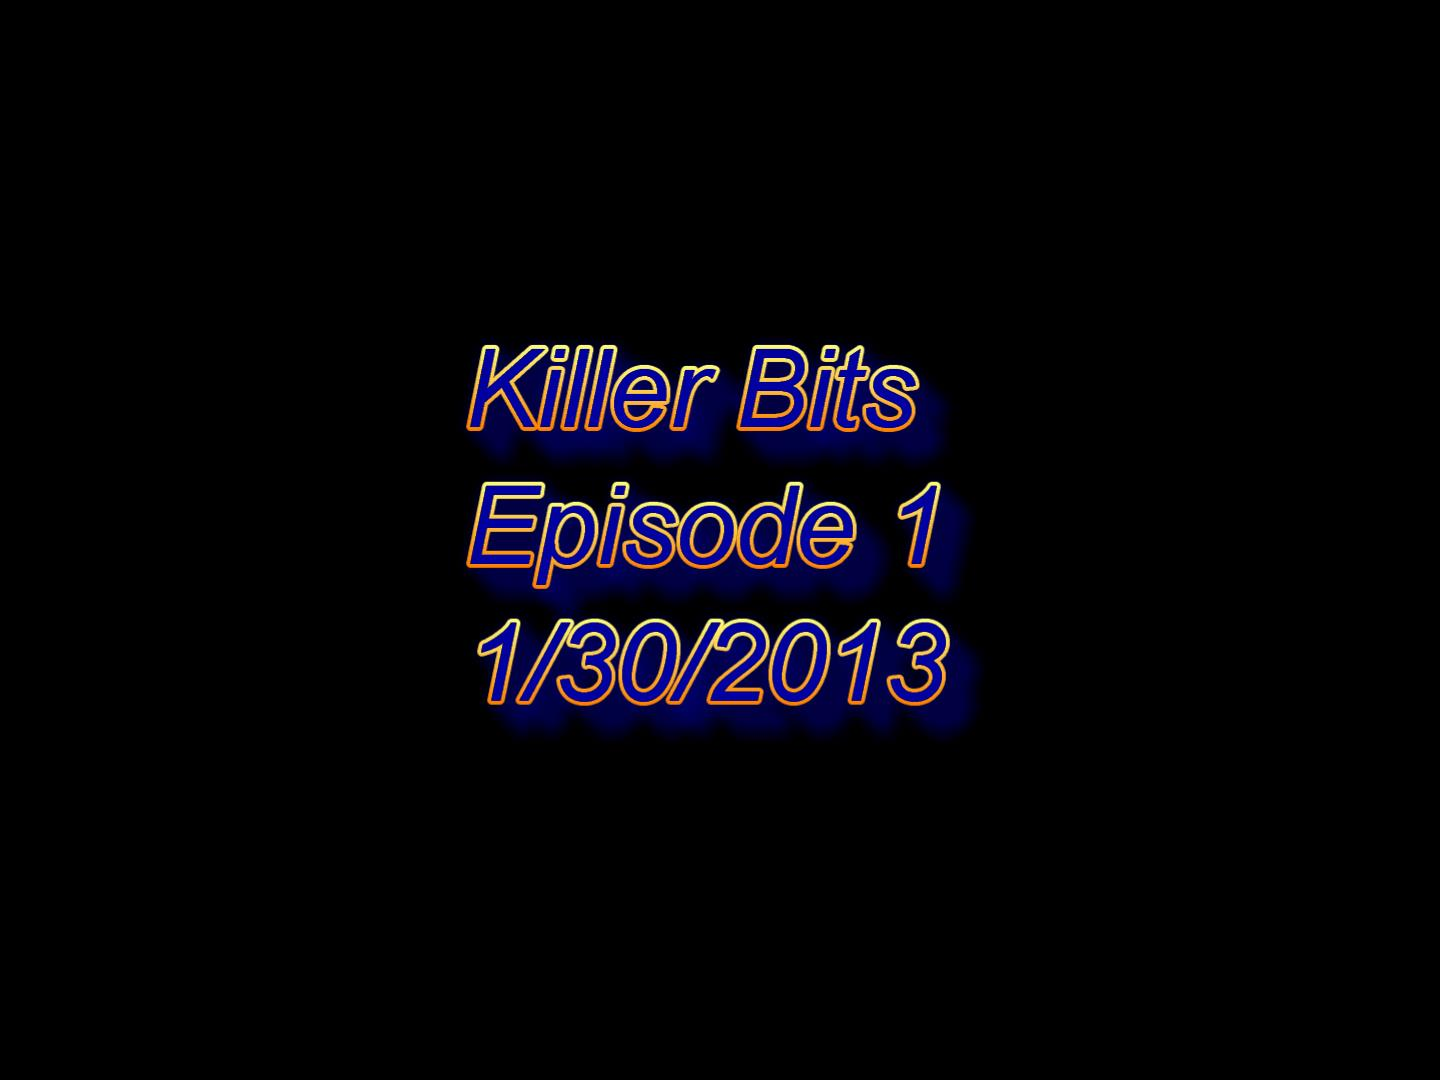 Killer Bits Launches on YouTube! Check Out the First Episode